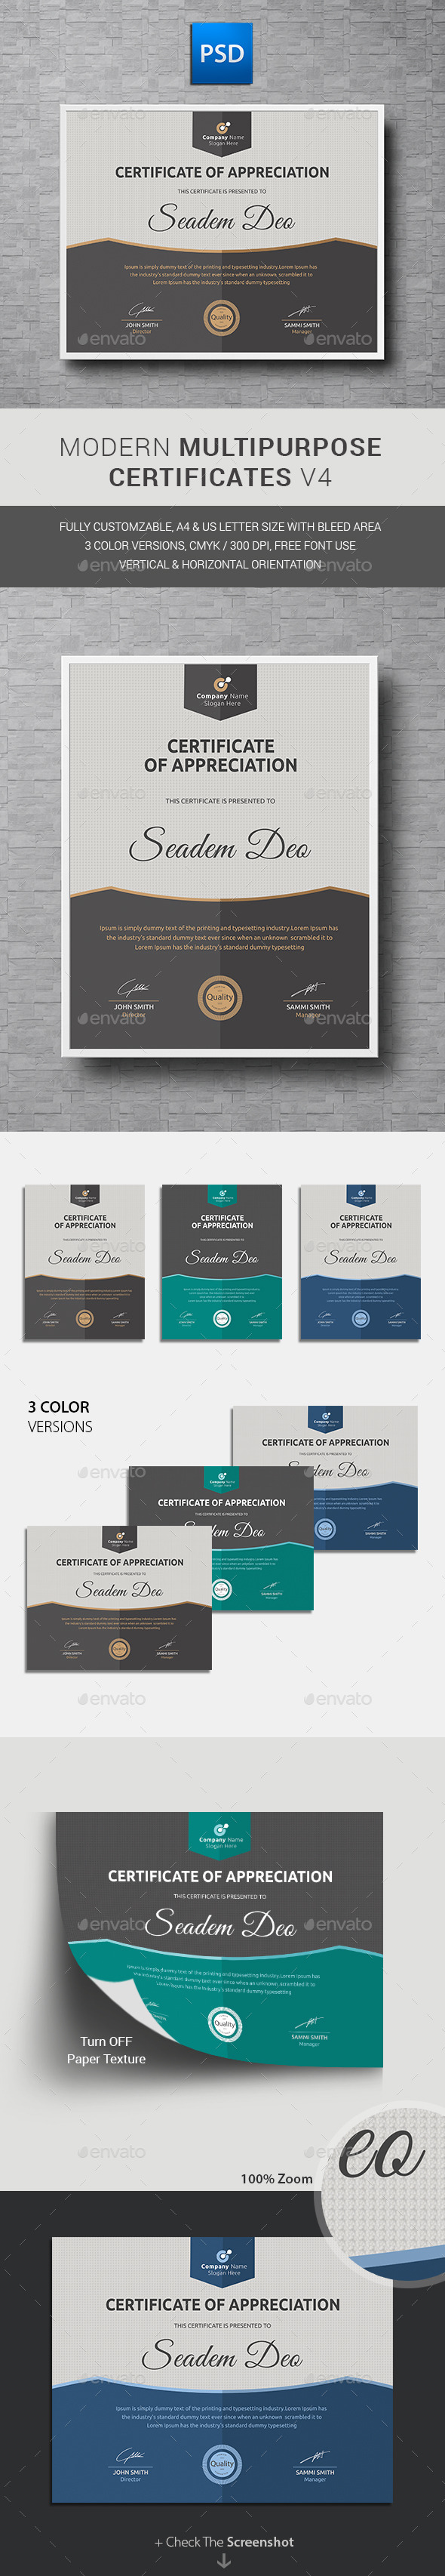 Pin by best Graphic Design on Certificate Templates   Pinterest     Pin by best Graphic Design on Certificate Templates   Pinterest    Certificate  Certificate design and Template